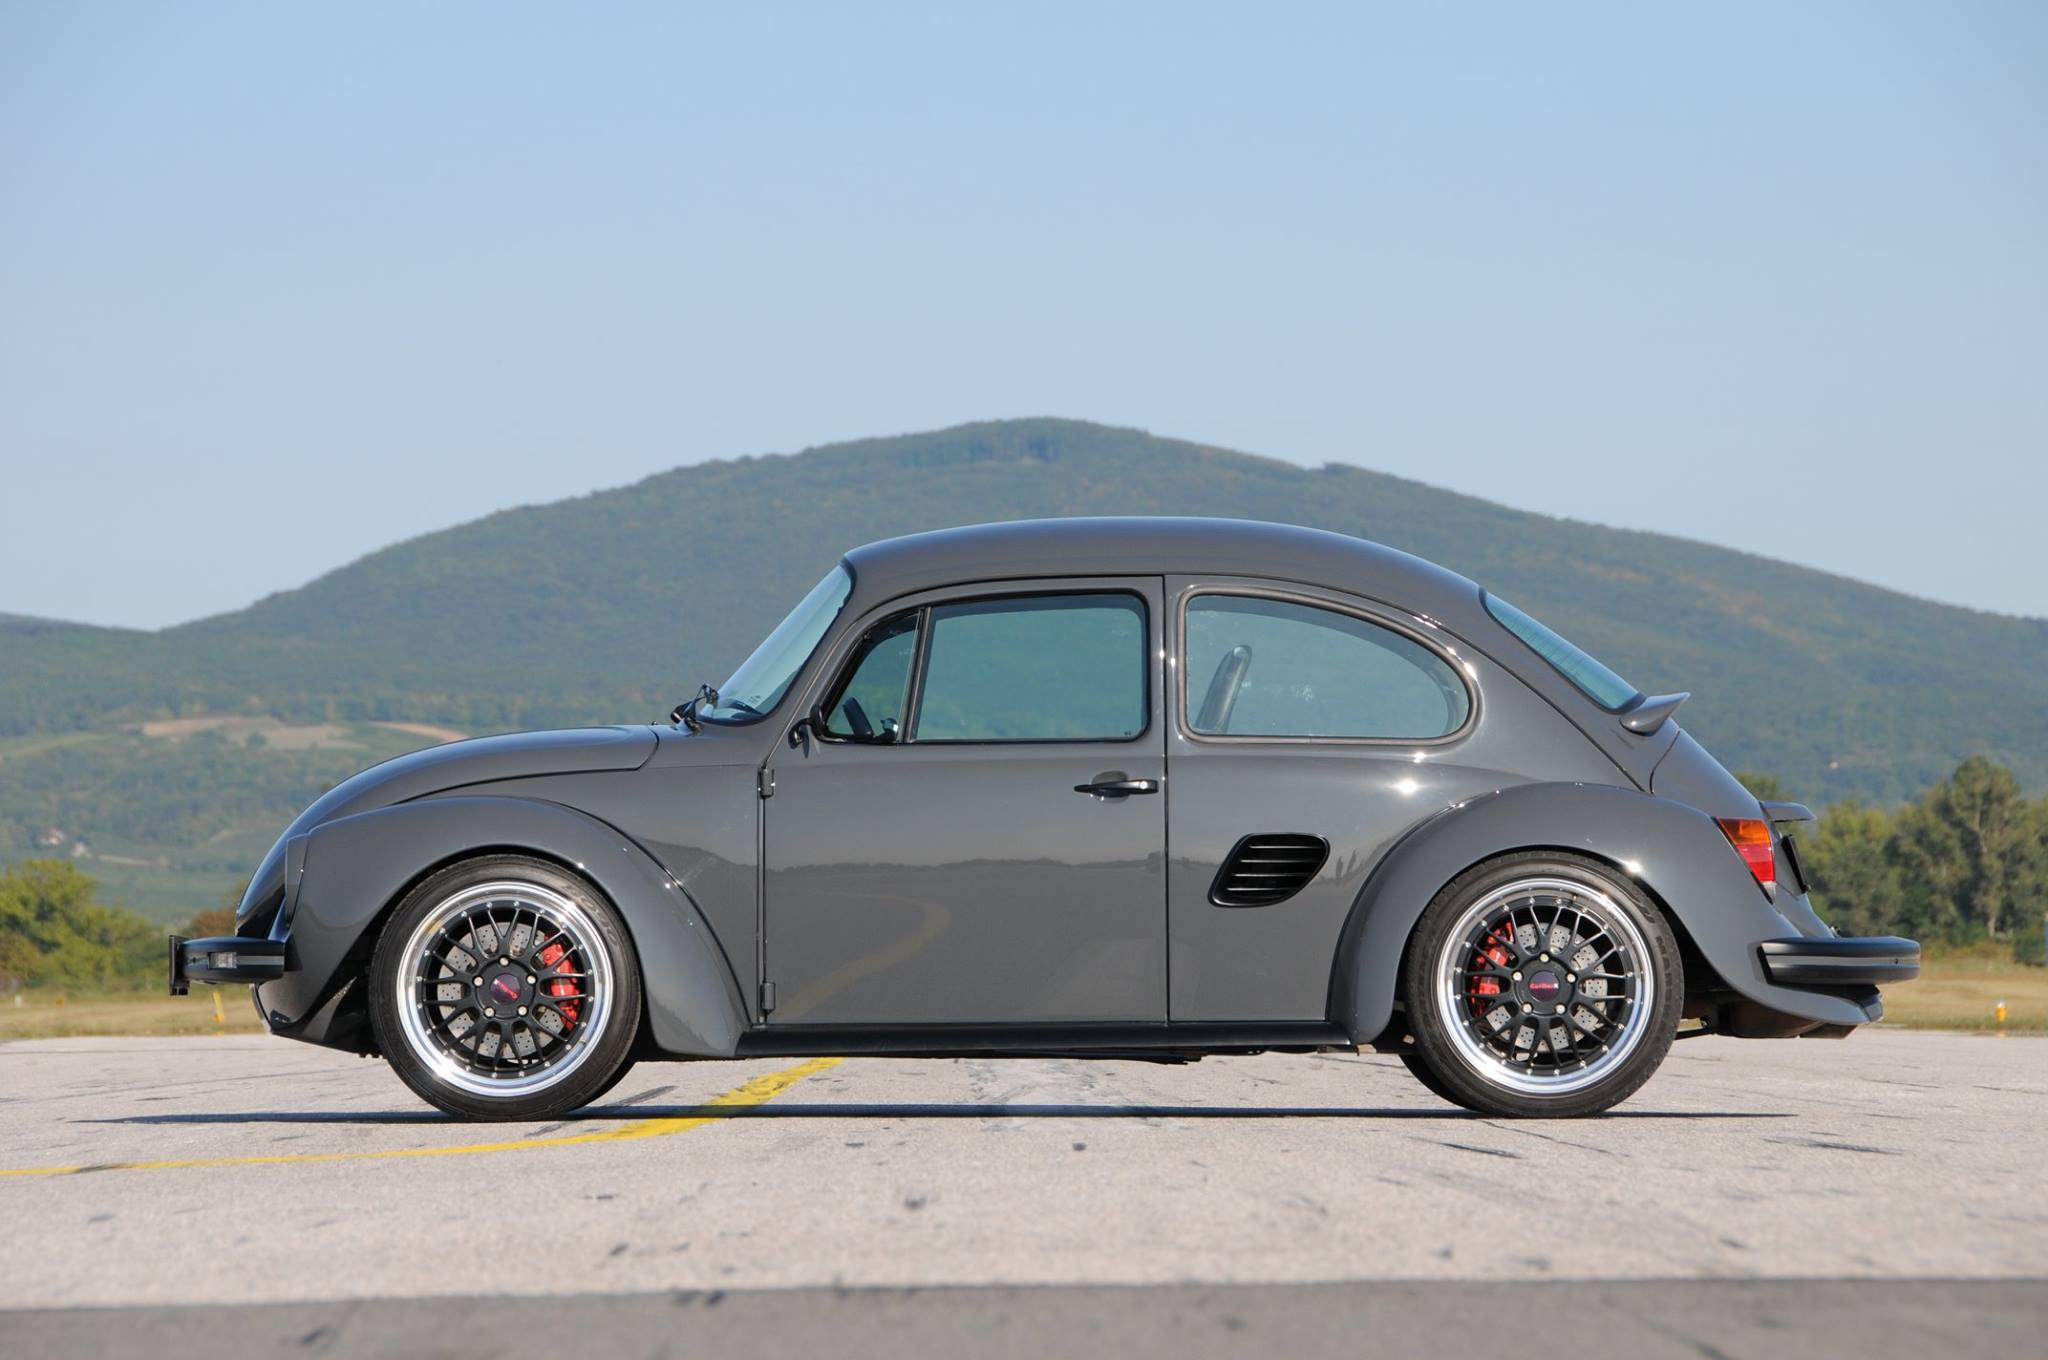 1973 Beetle Body On A Porsche Boxster S Chassis Engine Swap Depot